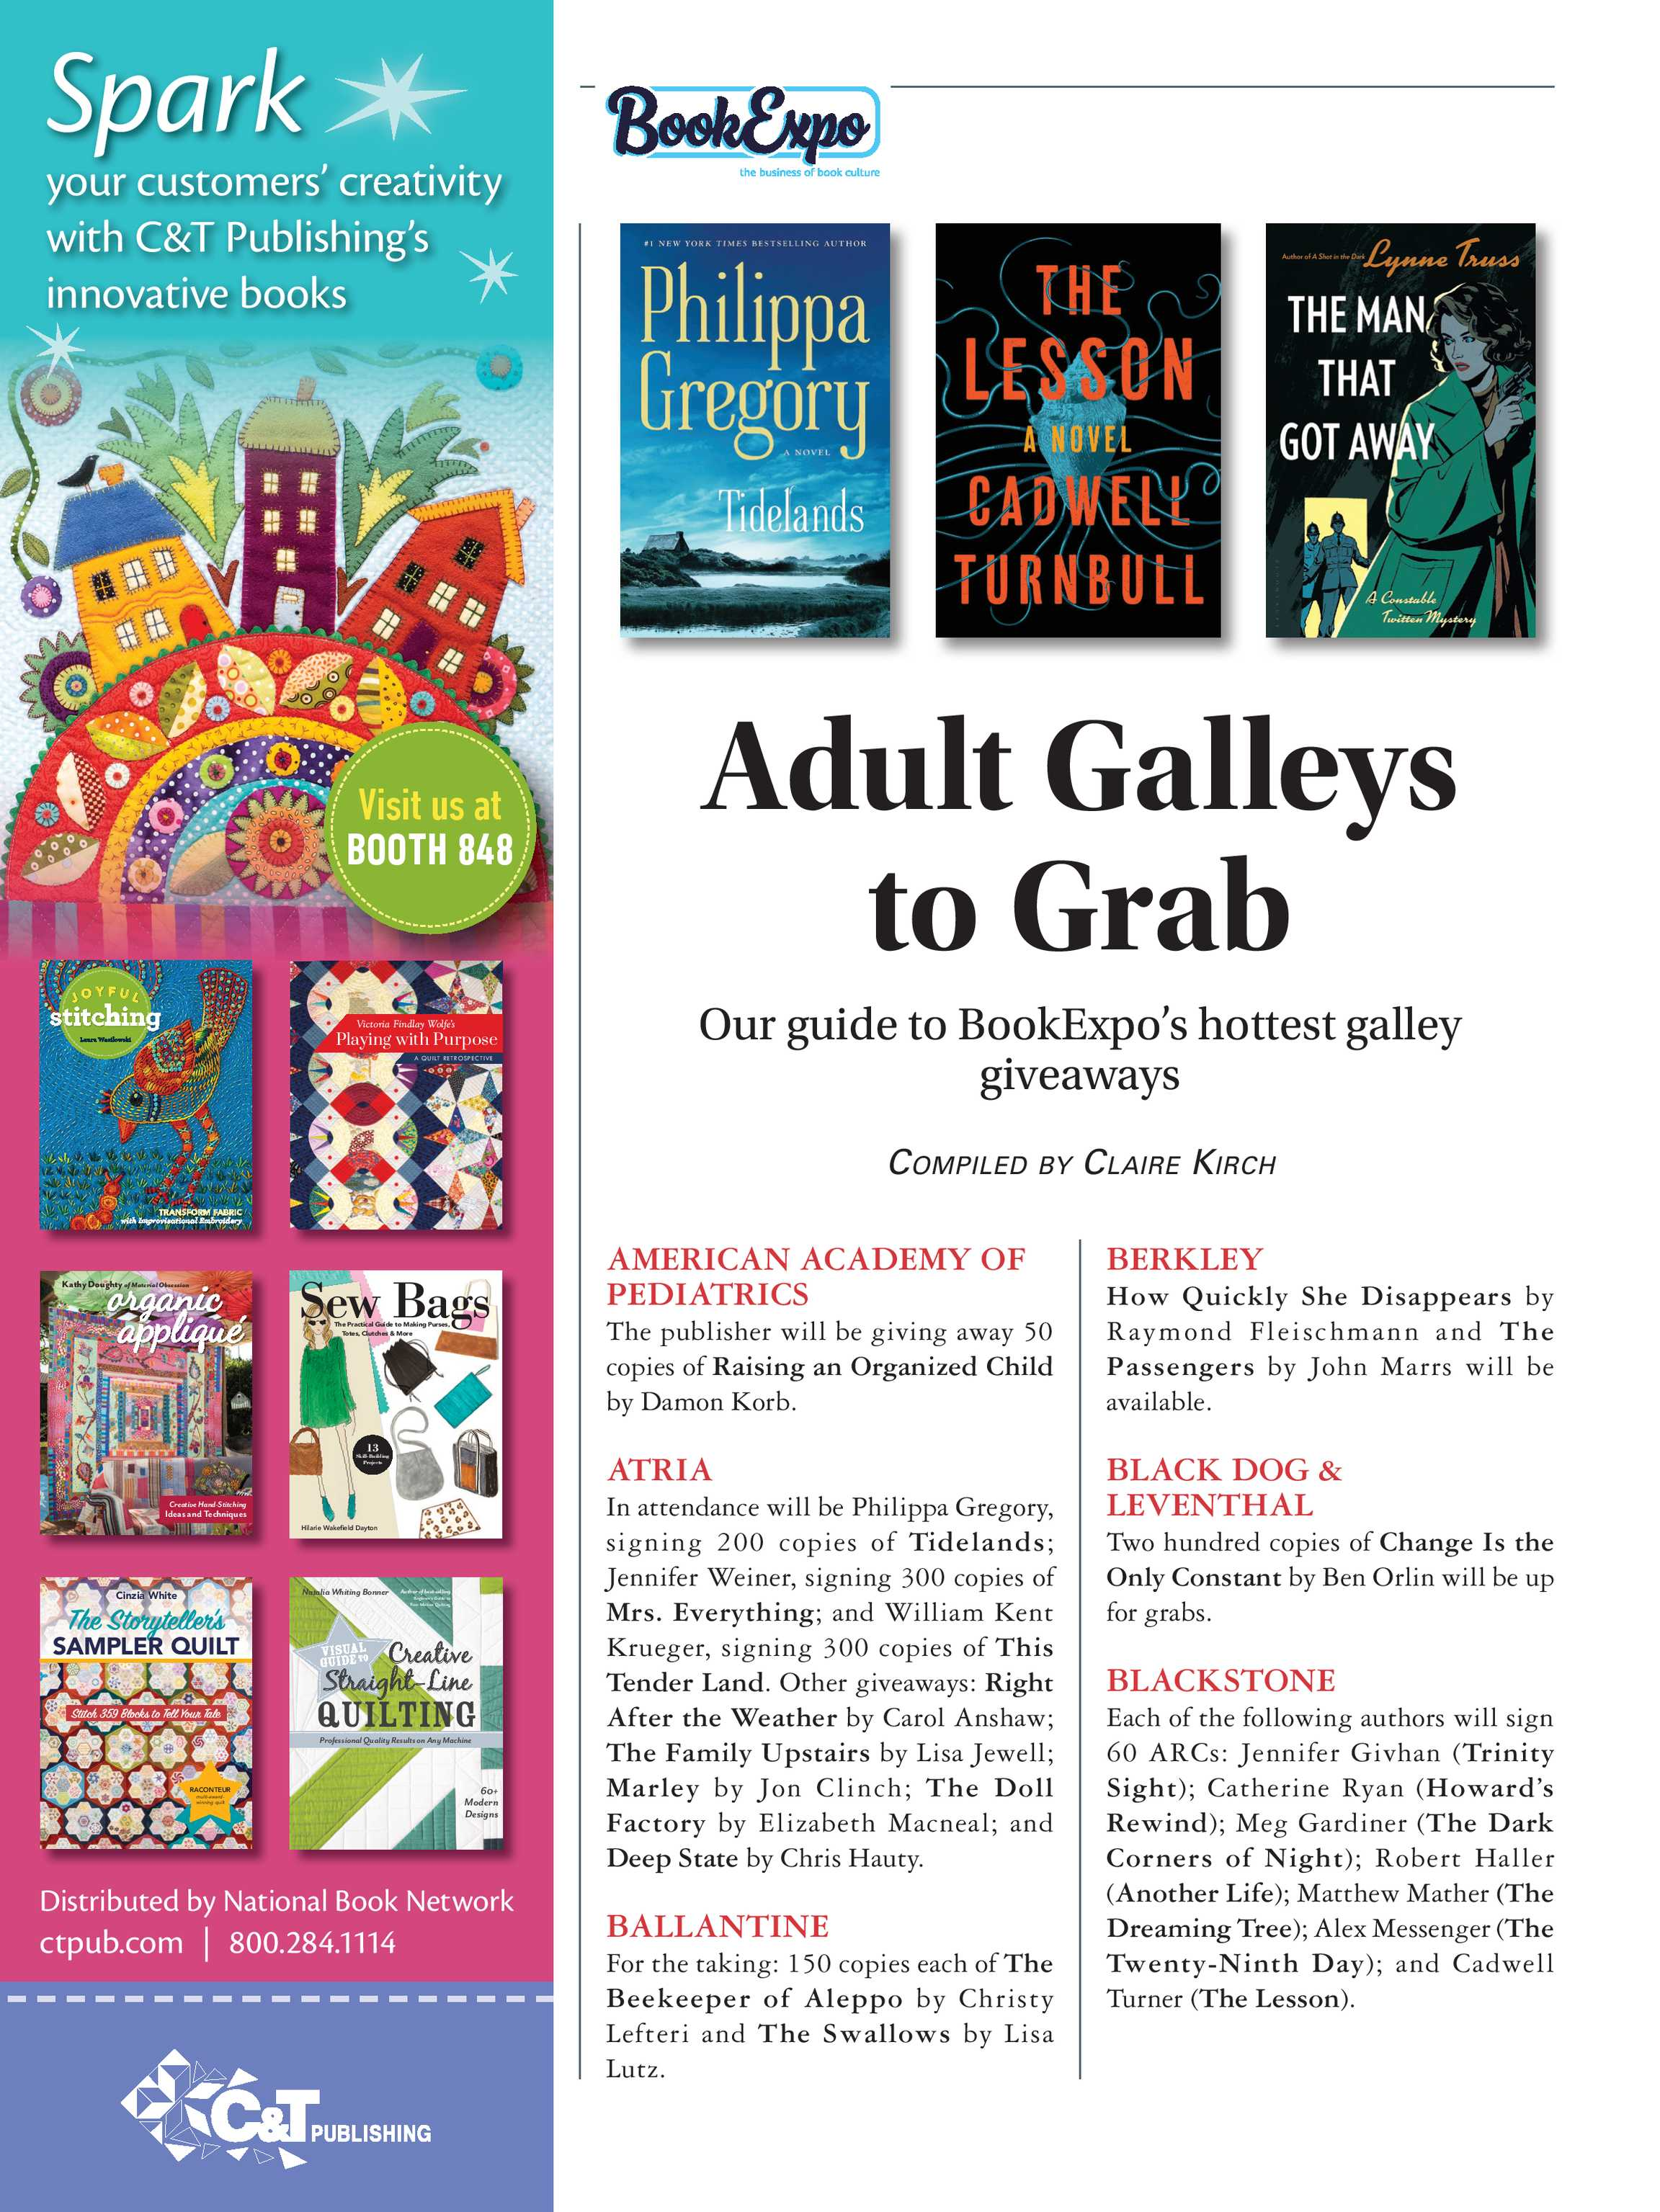 Publishers Weekly - May 13, 2019 - page S28